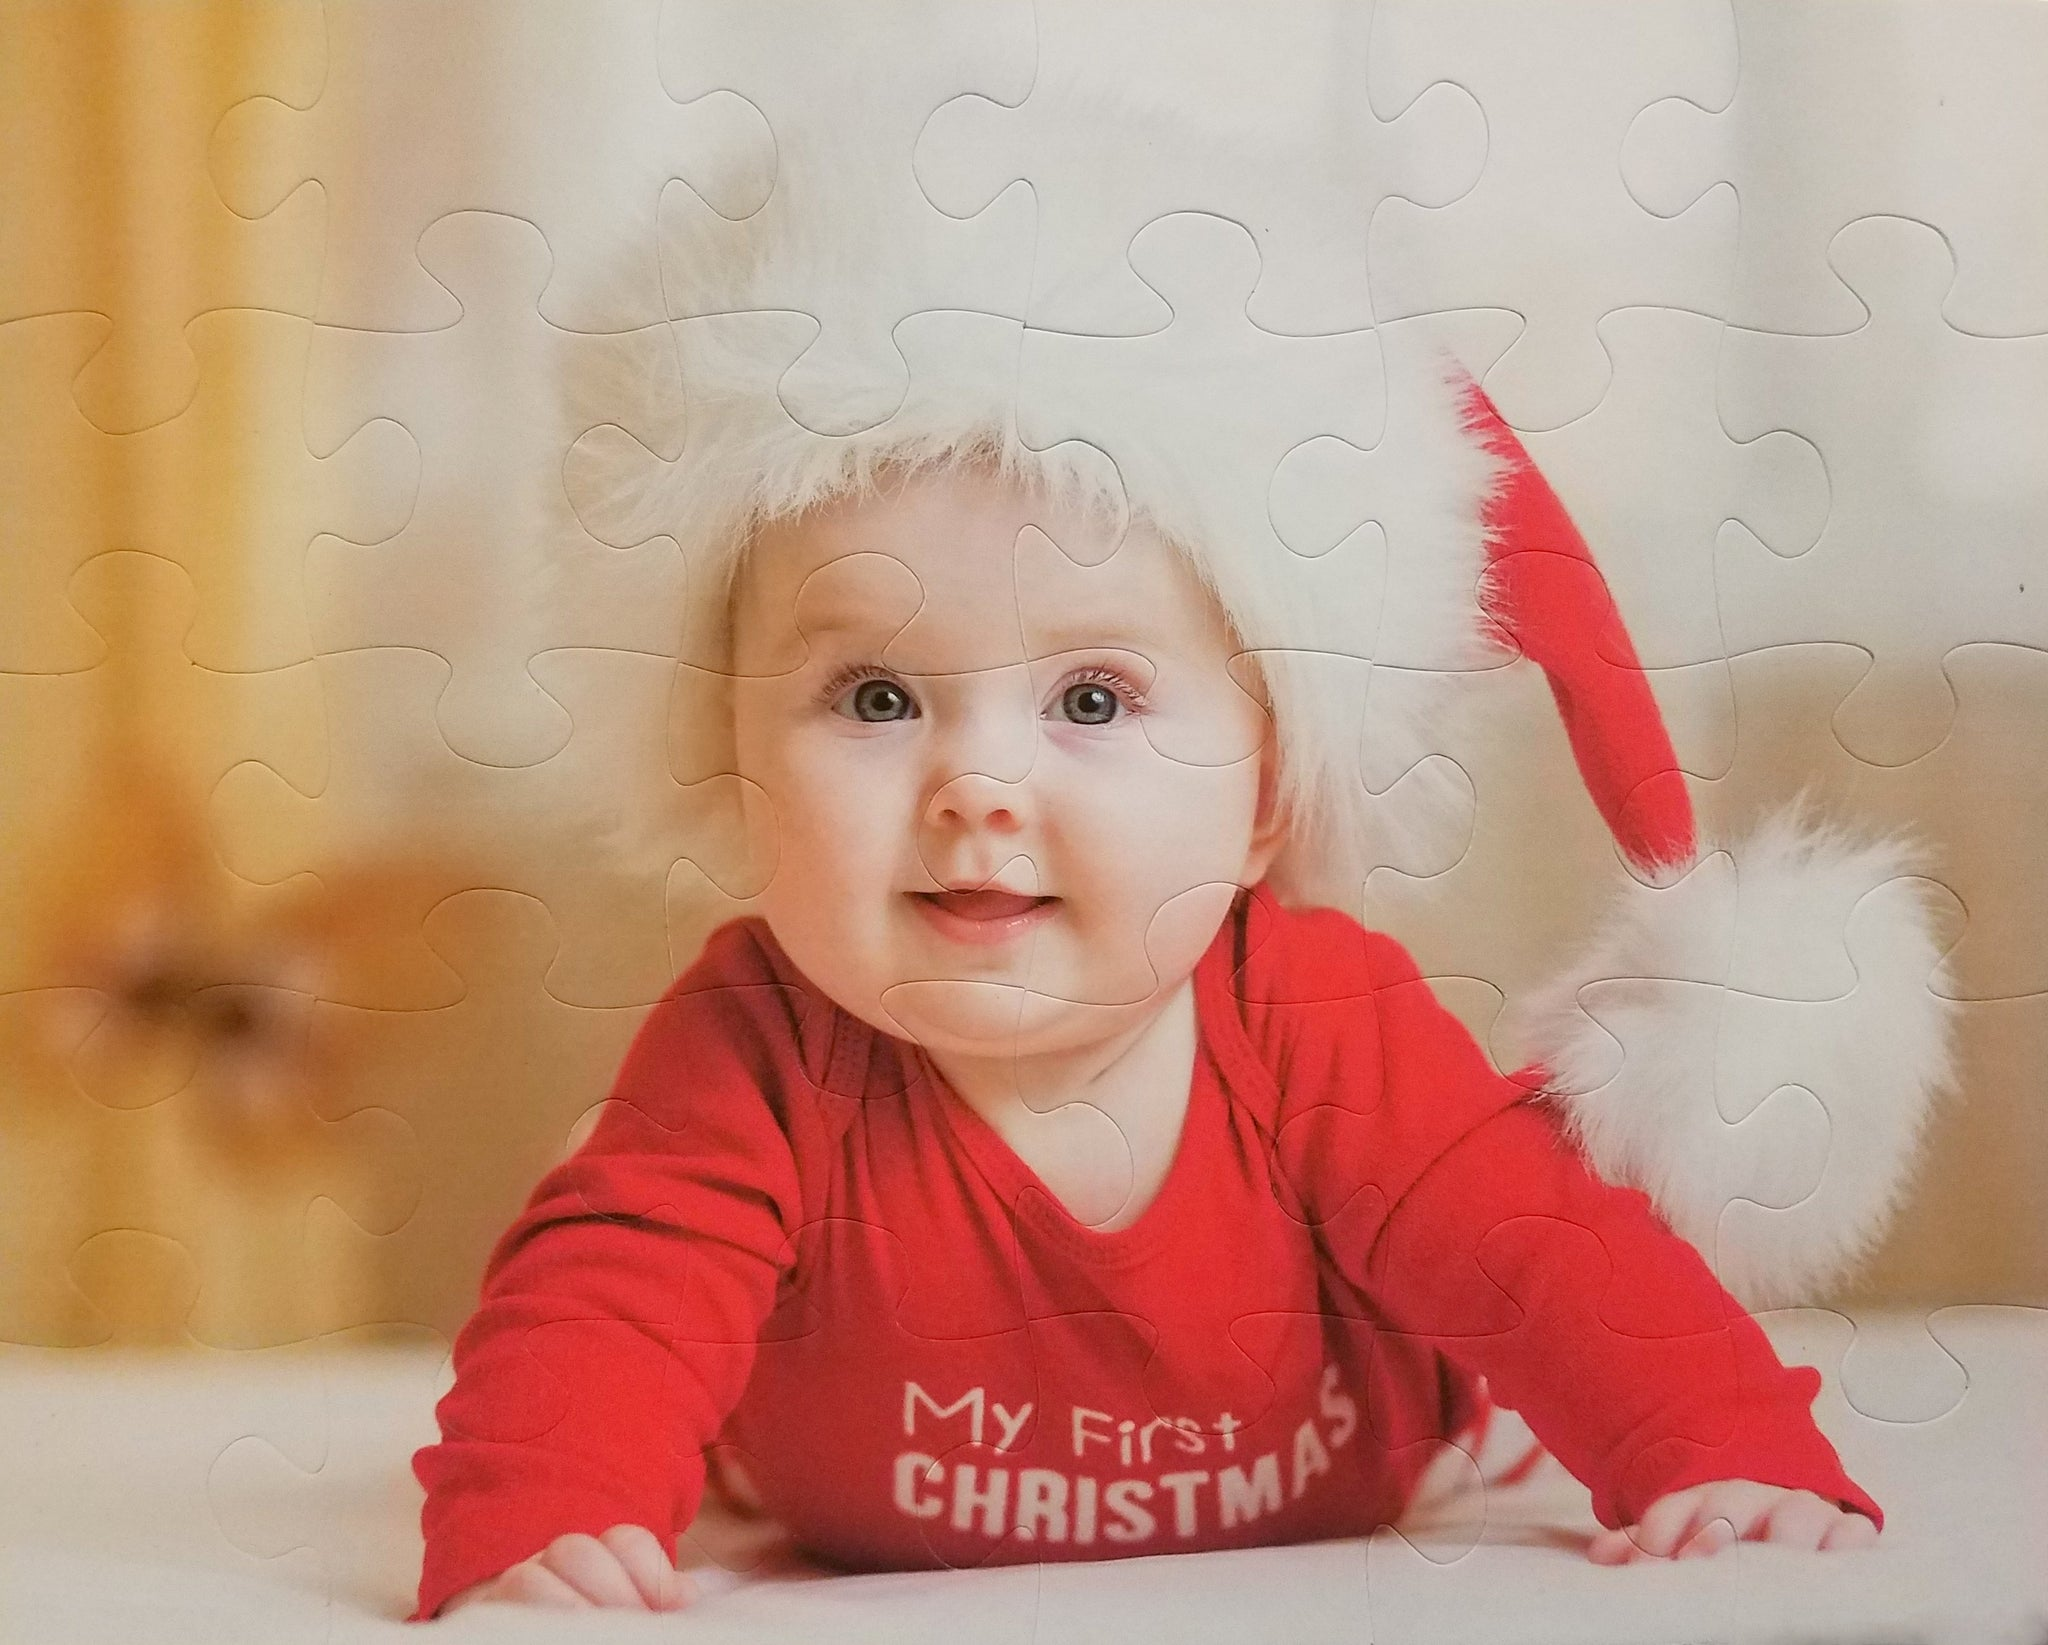 Custom photo jigsaw 8x10 with 30 big pieces for kids.  Baby with santa hat on a puzzle.  Big puzzle pieces in cheap puzzle that is made well.